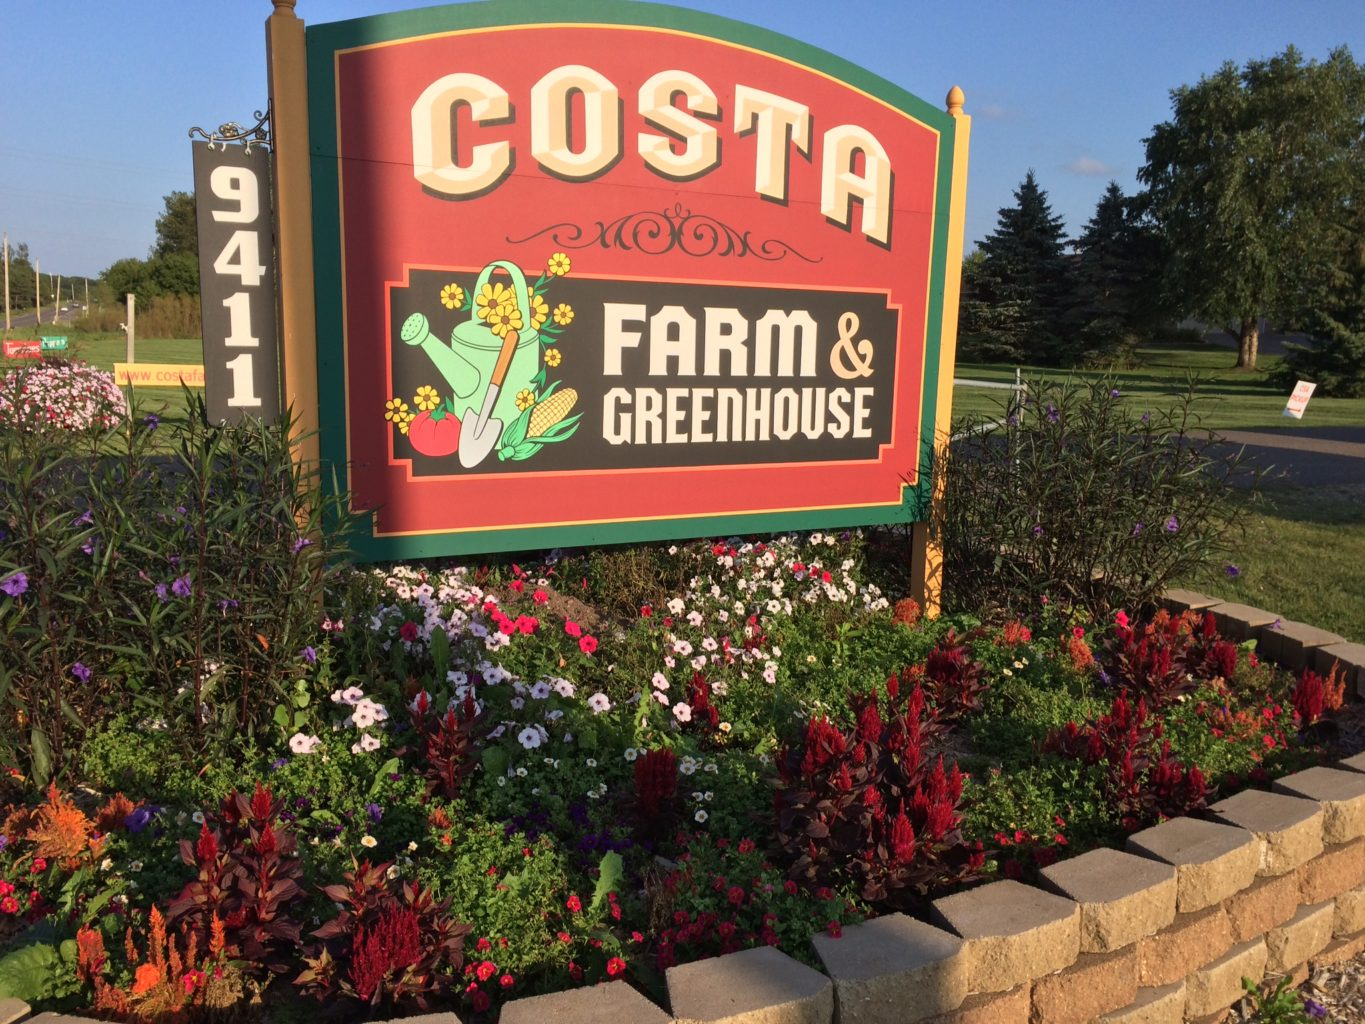 Costa farm and greenhouse outdoor sign in a flower bed. Sign design includes a red background, gold lettering, and a corn cob and tomatoe